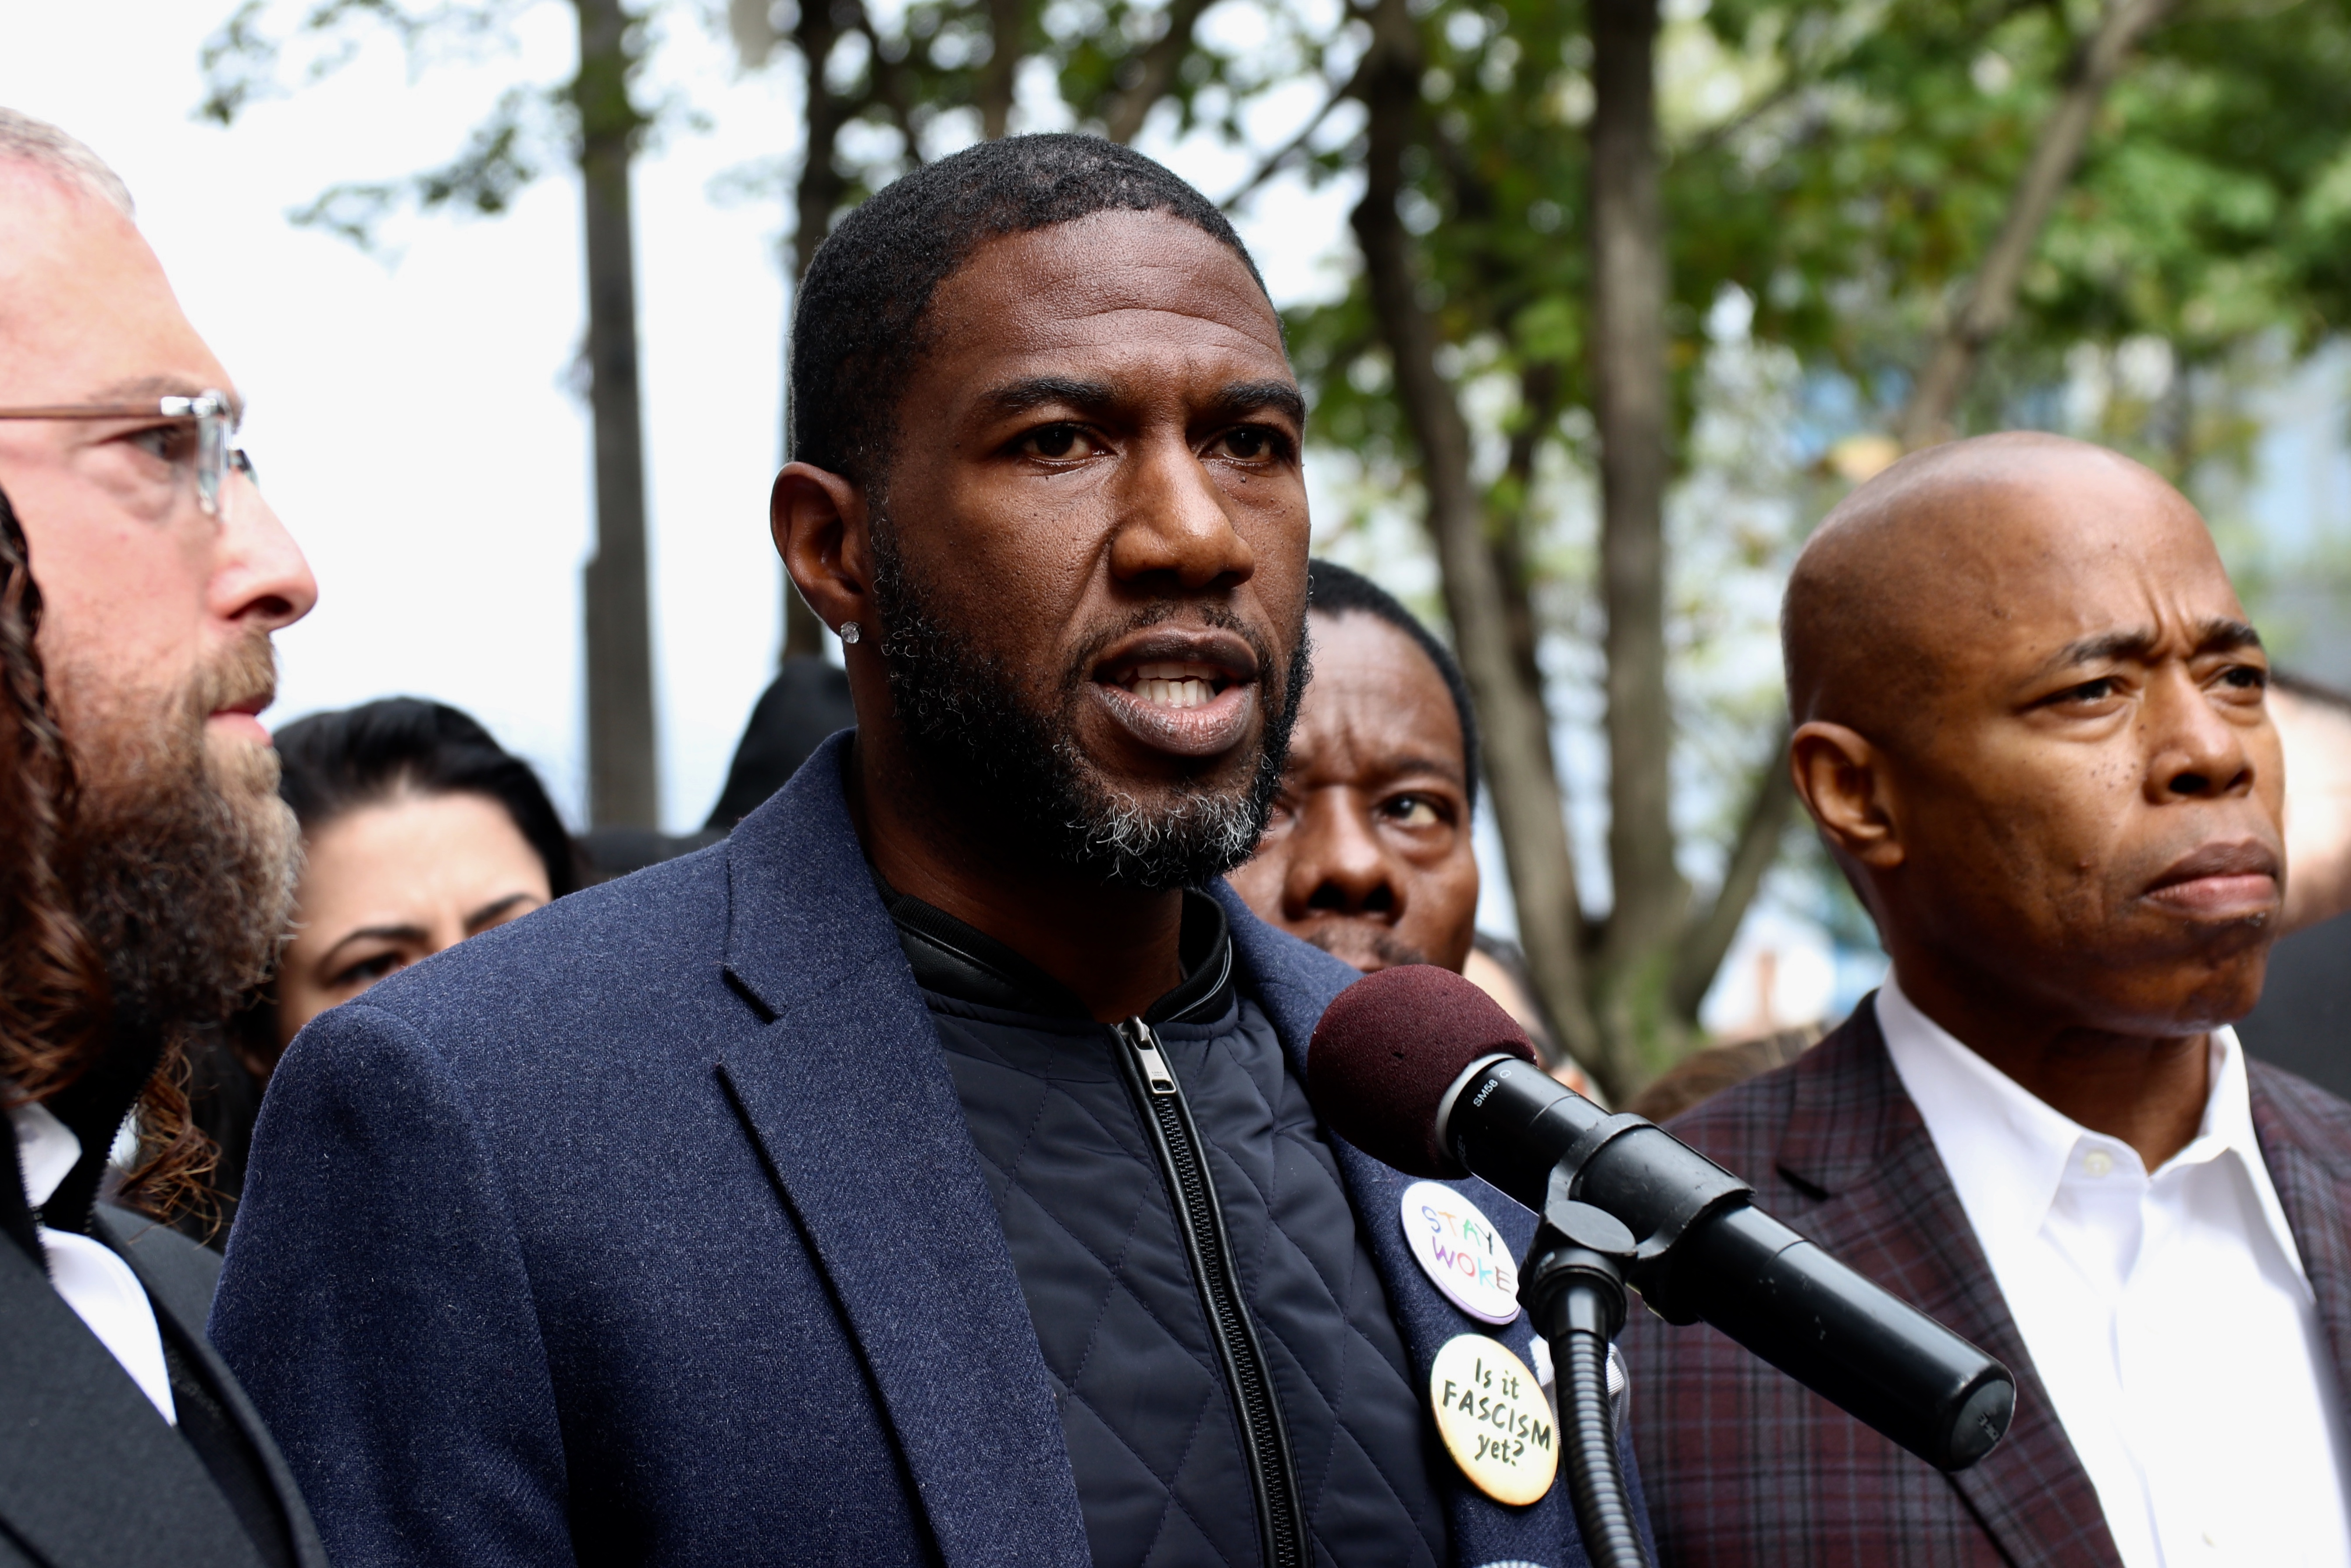 Jumaane Williams. (Photo: Zainab Iqbal/Bklyner)